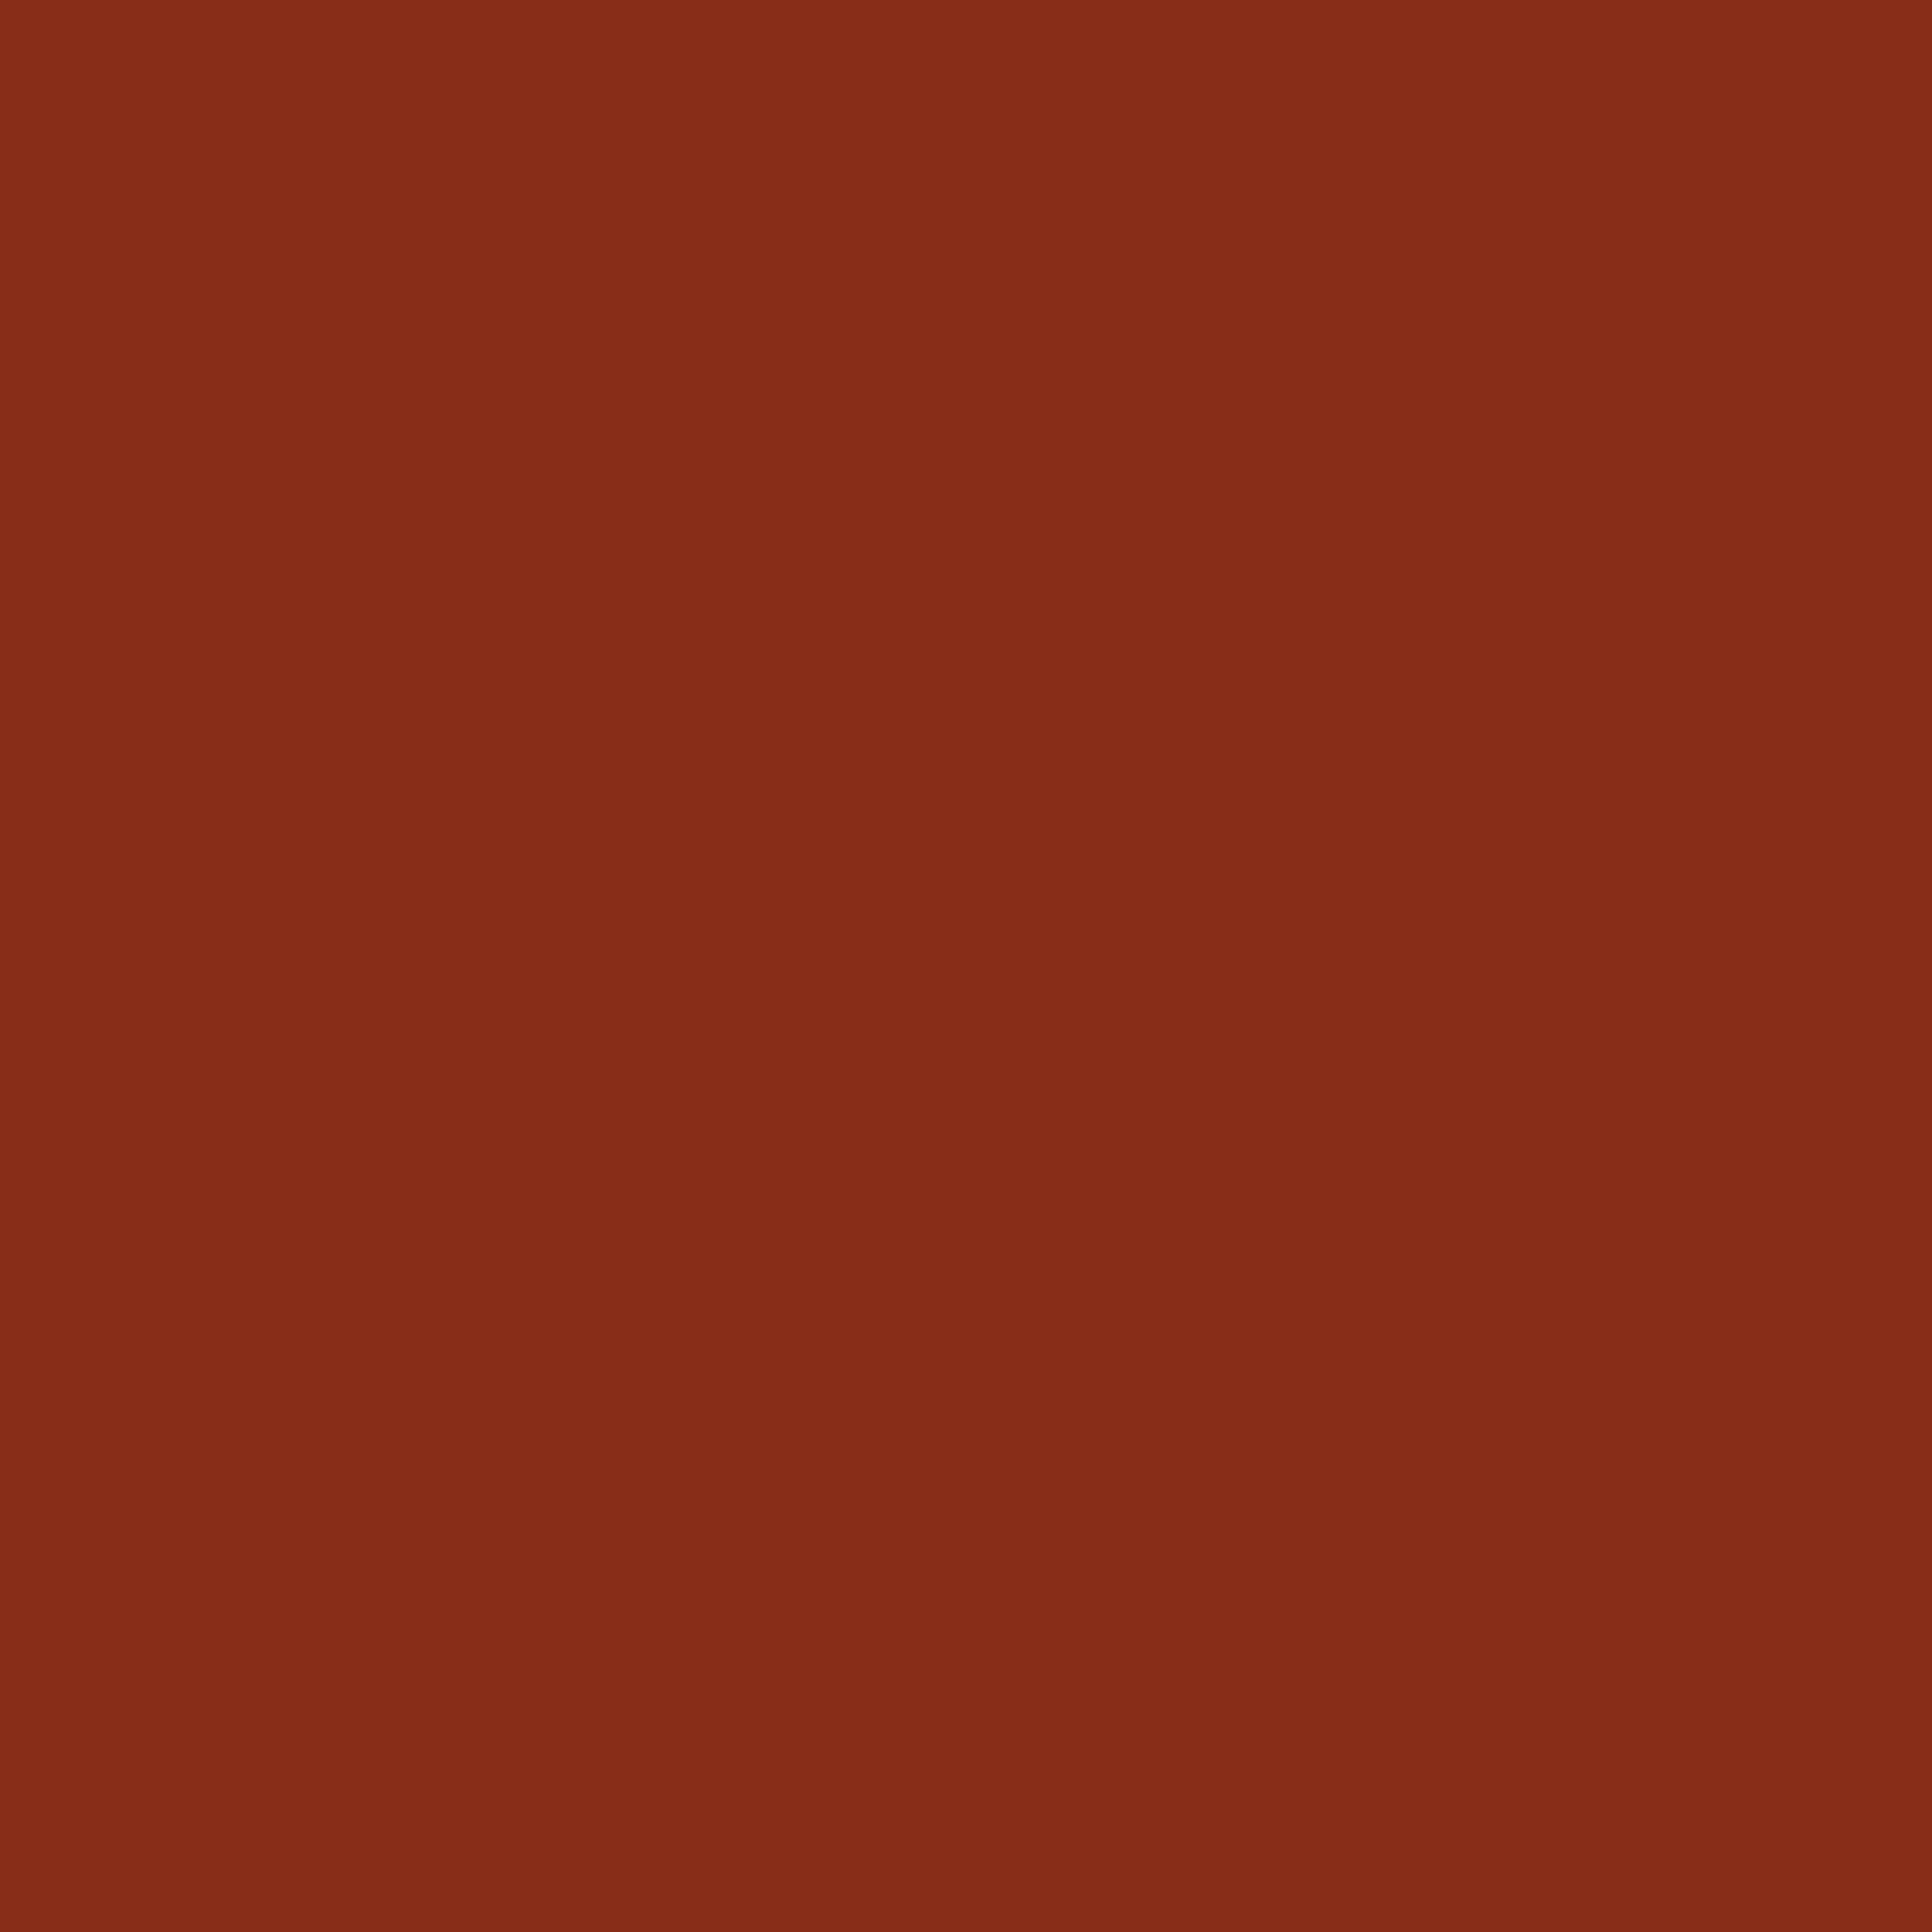 2048x2048 Sienna Solid Color Background